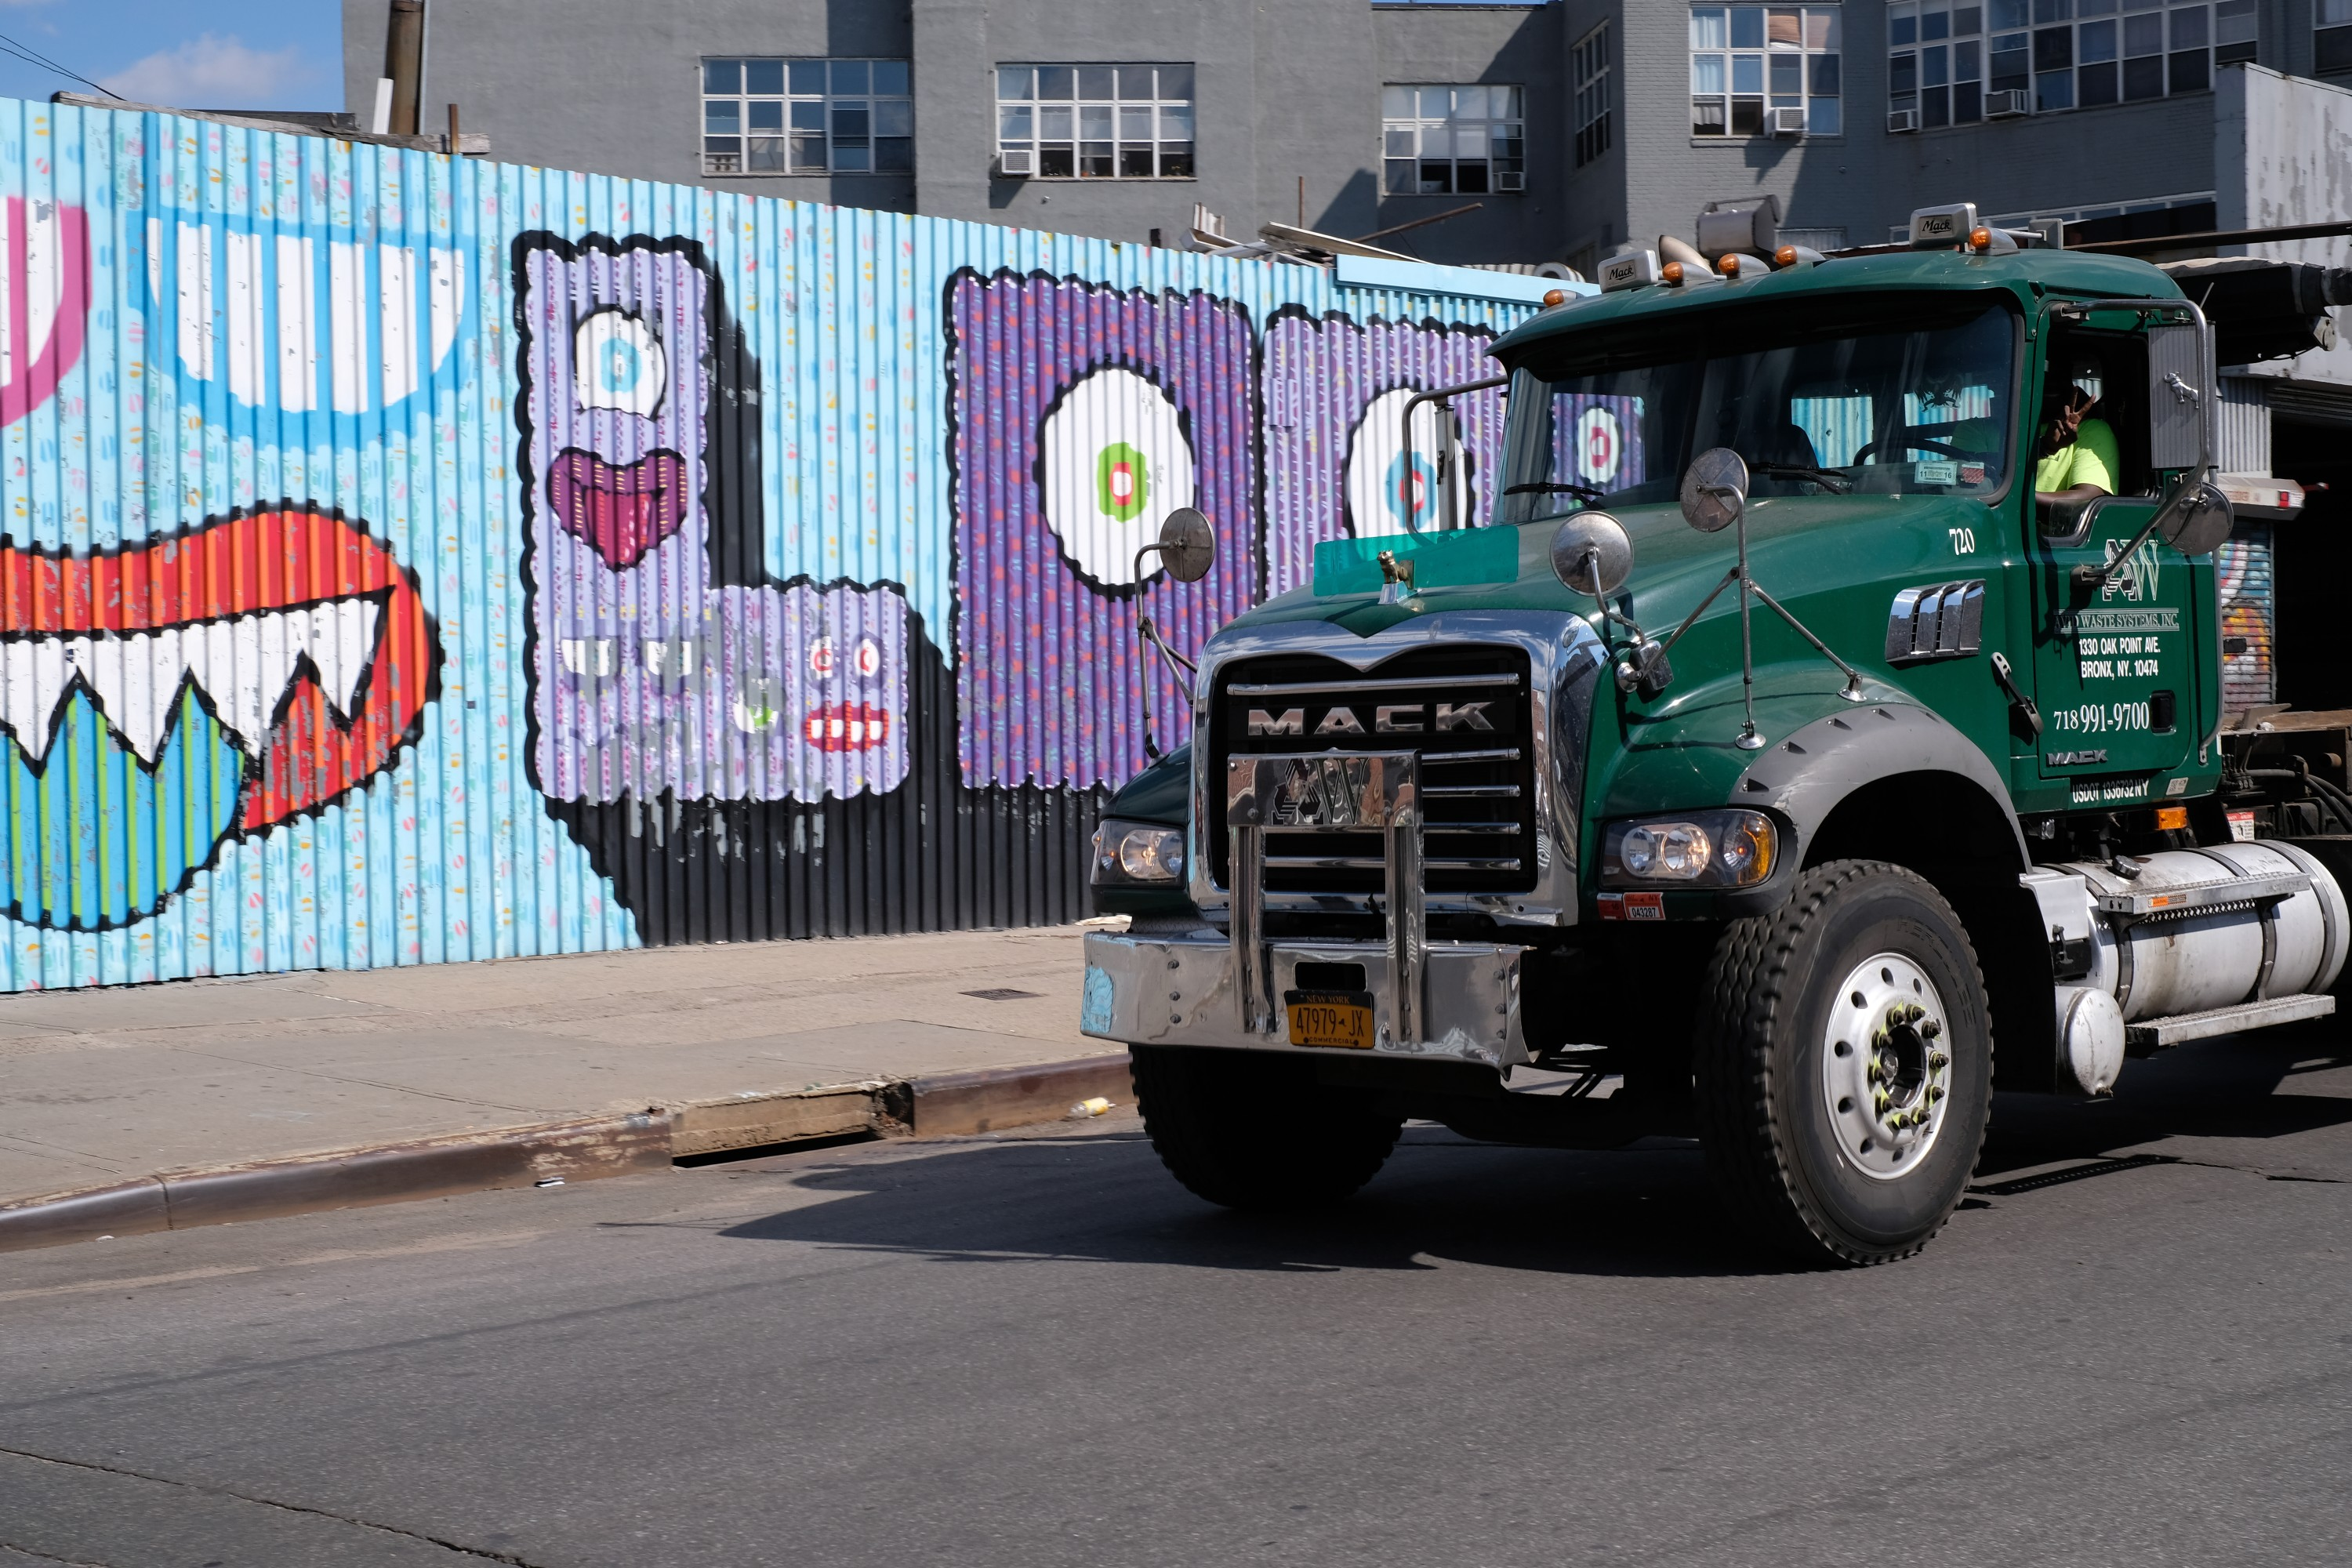 cab of Mack truck by street art